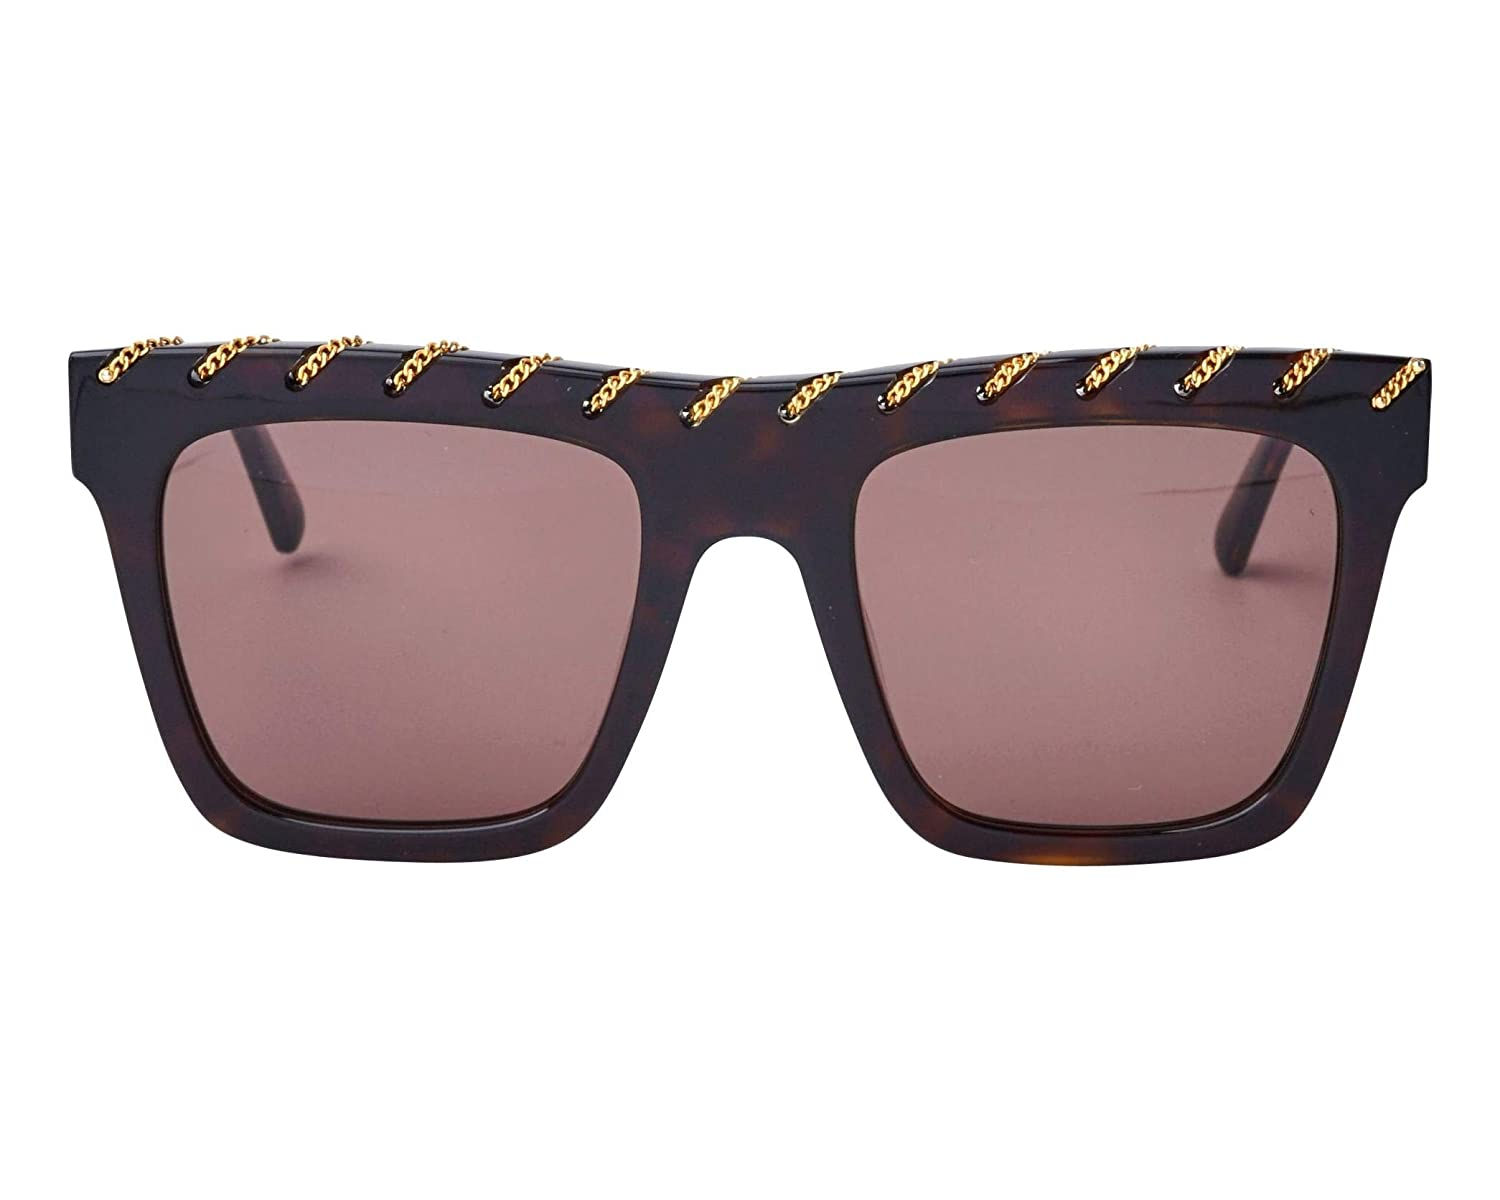 Gafa de sol Stella McCartney SC0128s 002: Amazon.es: Ropa y ...